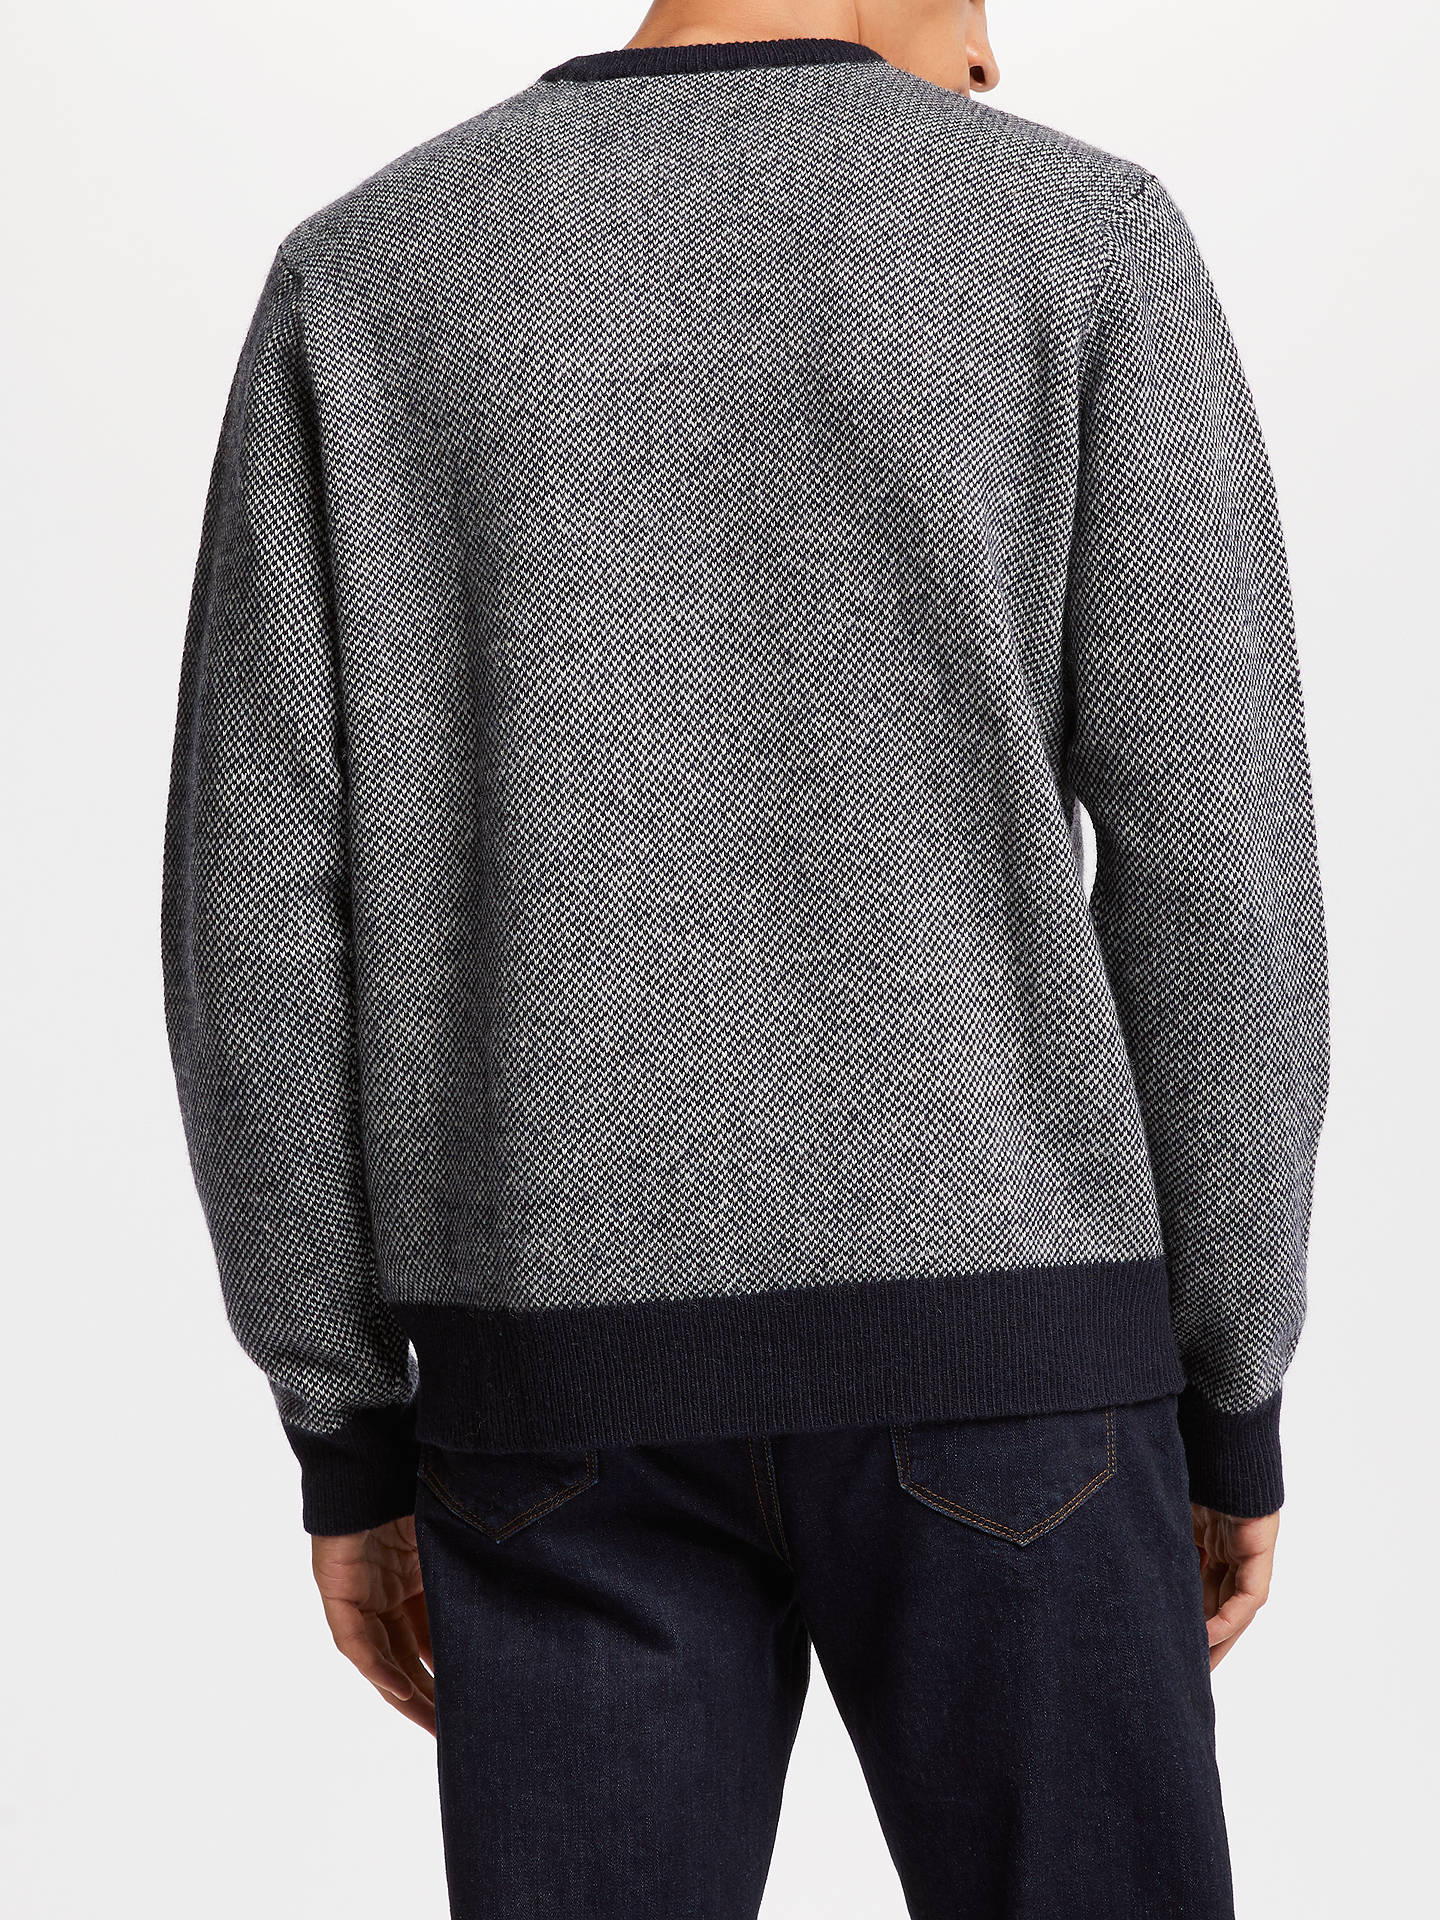 BuyCarhartt WIP Spooner Birdseye Crew Neck Jumper, Dark Navy/Snow, M Online at johnlewis.com